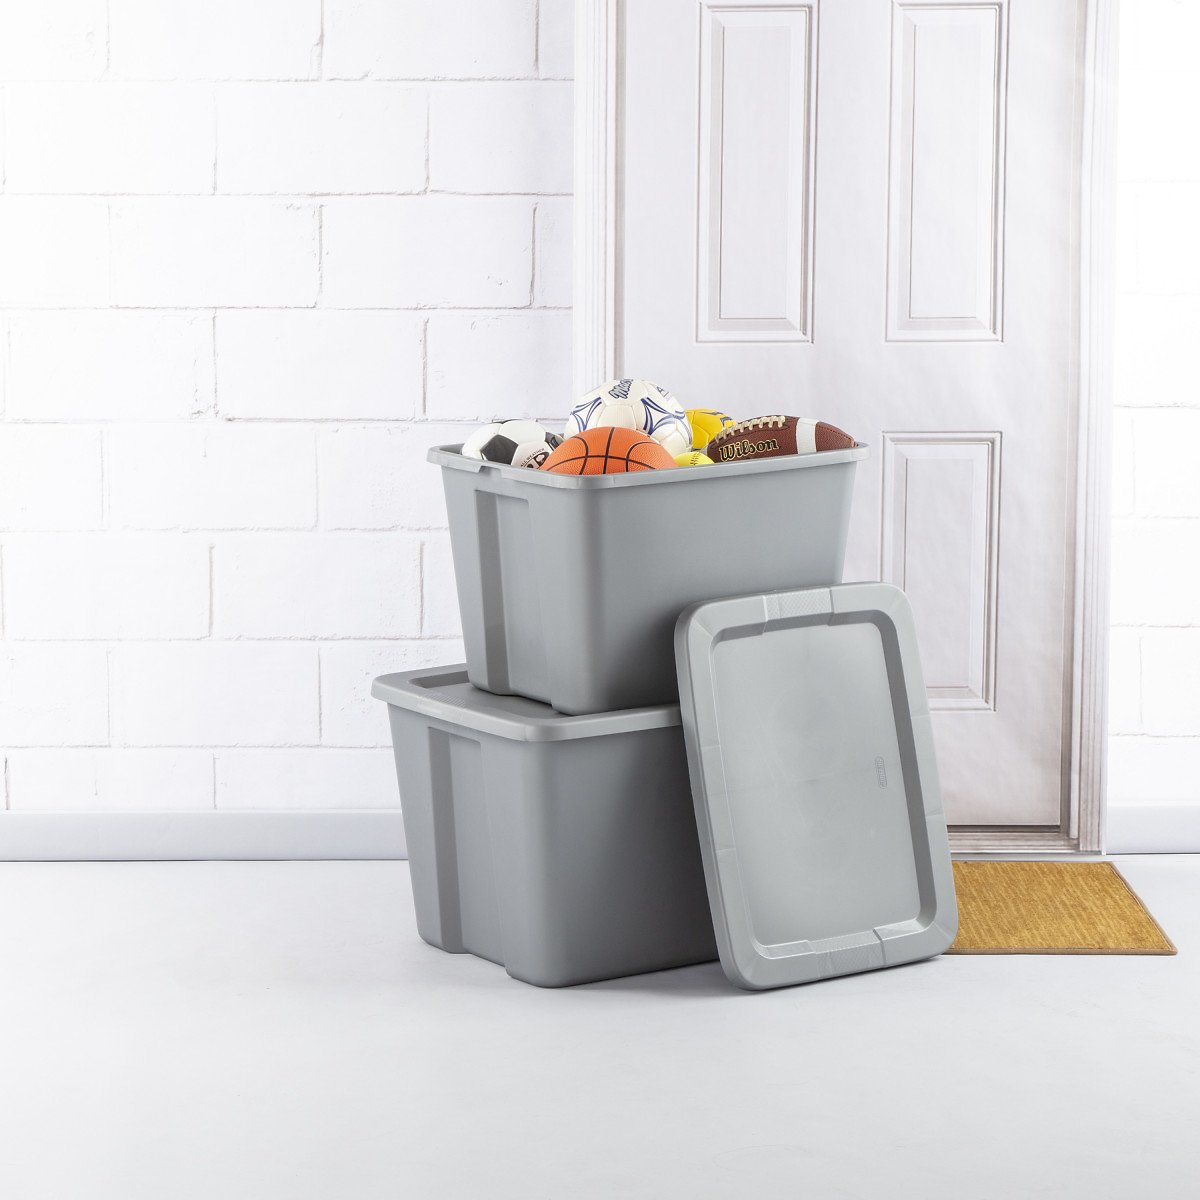 Sterilite 18 Gal. Tote Box Titanium Case of 8